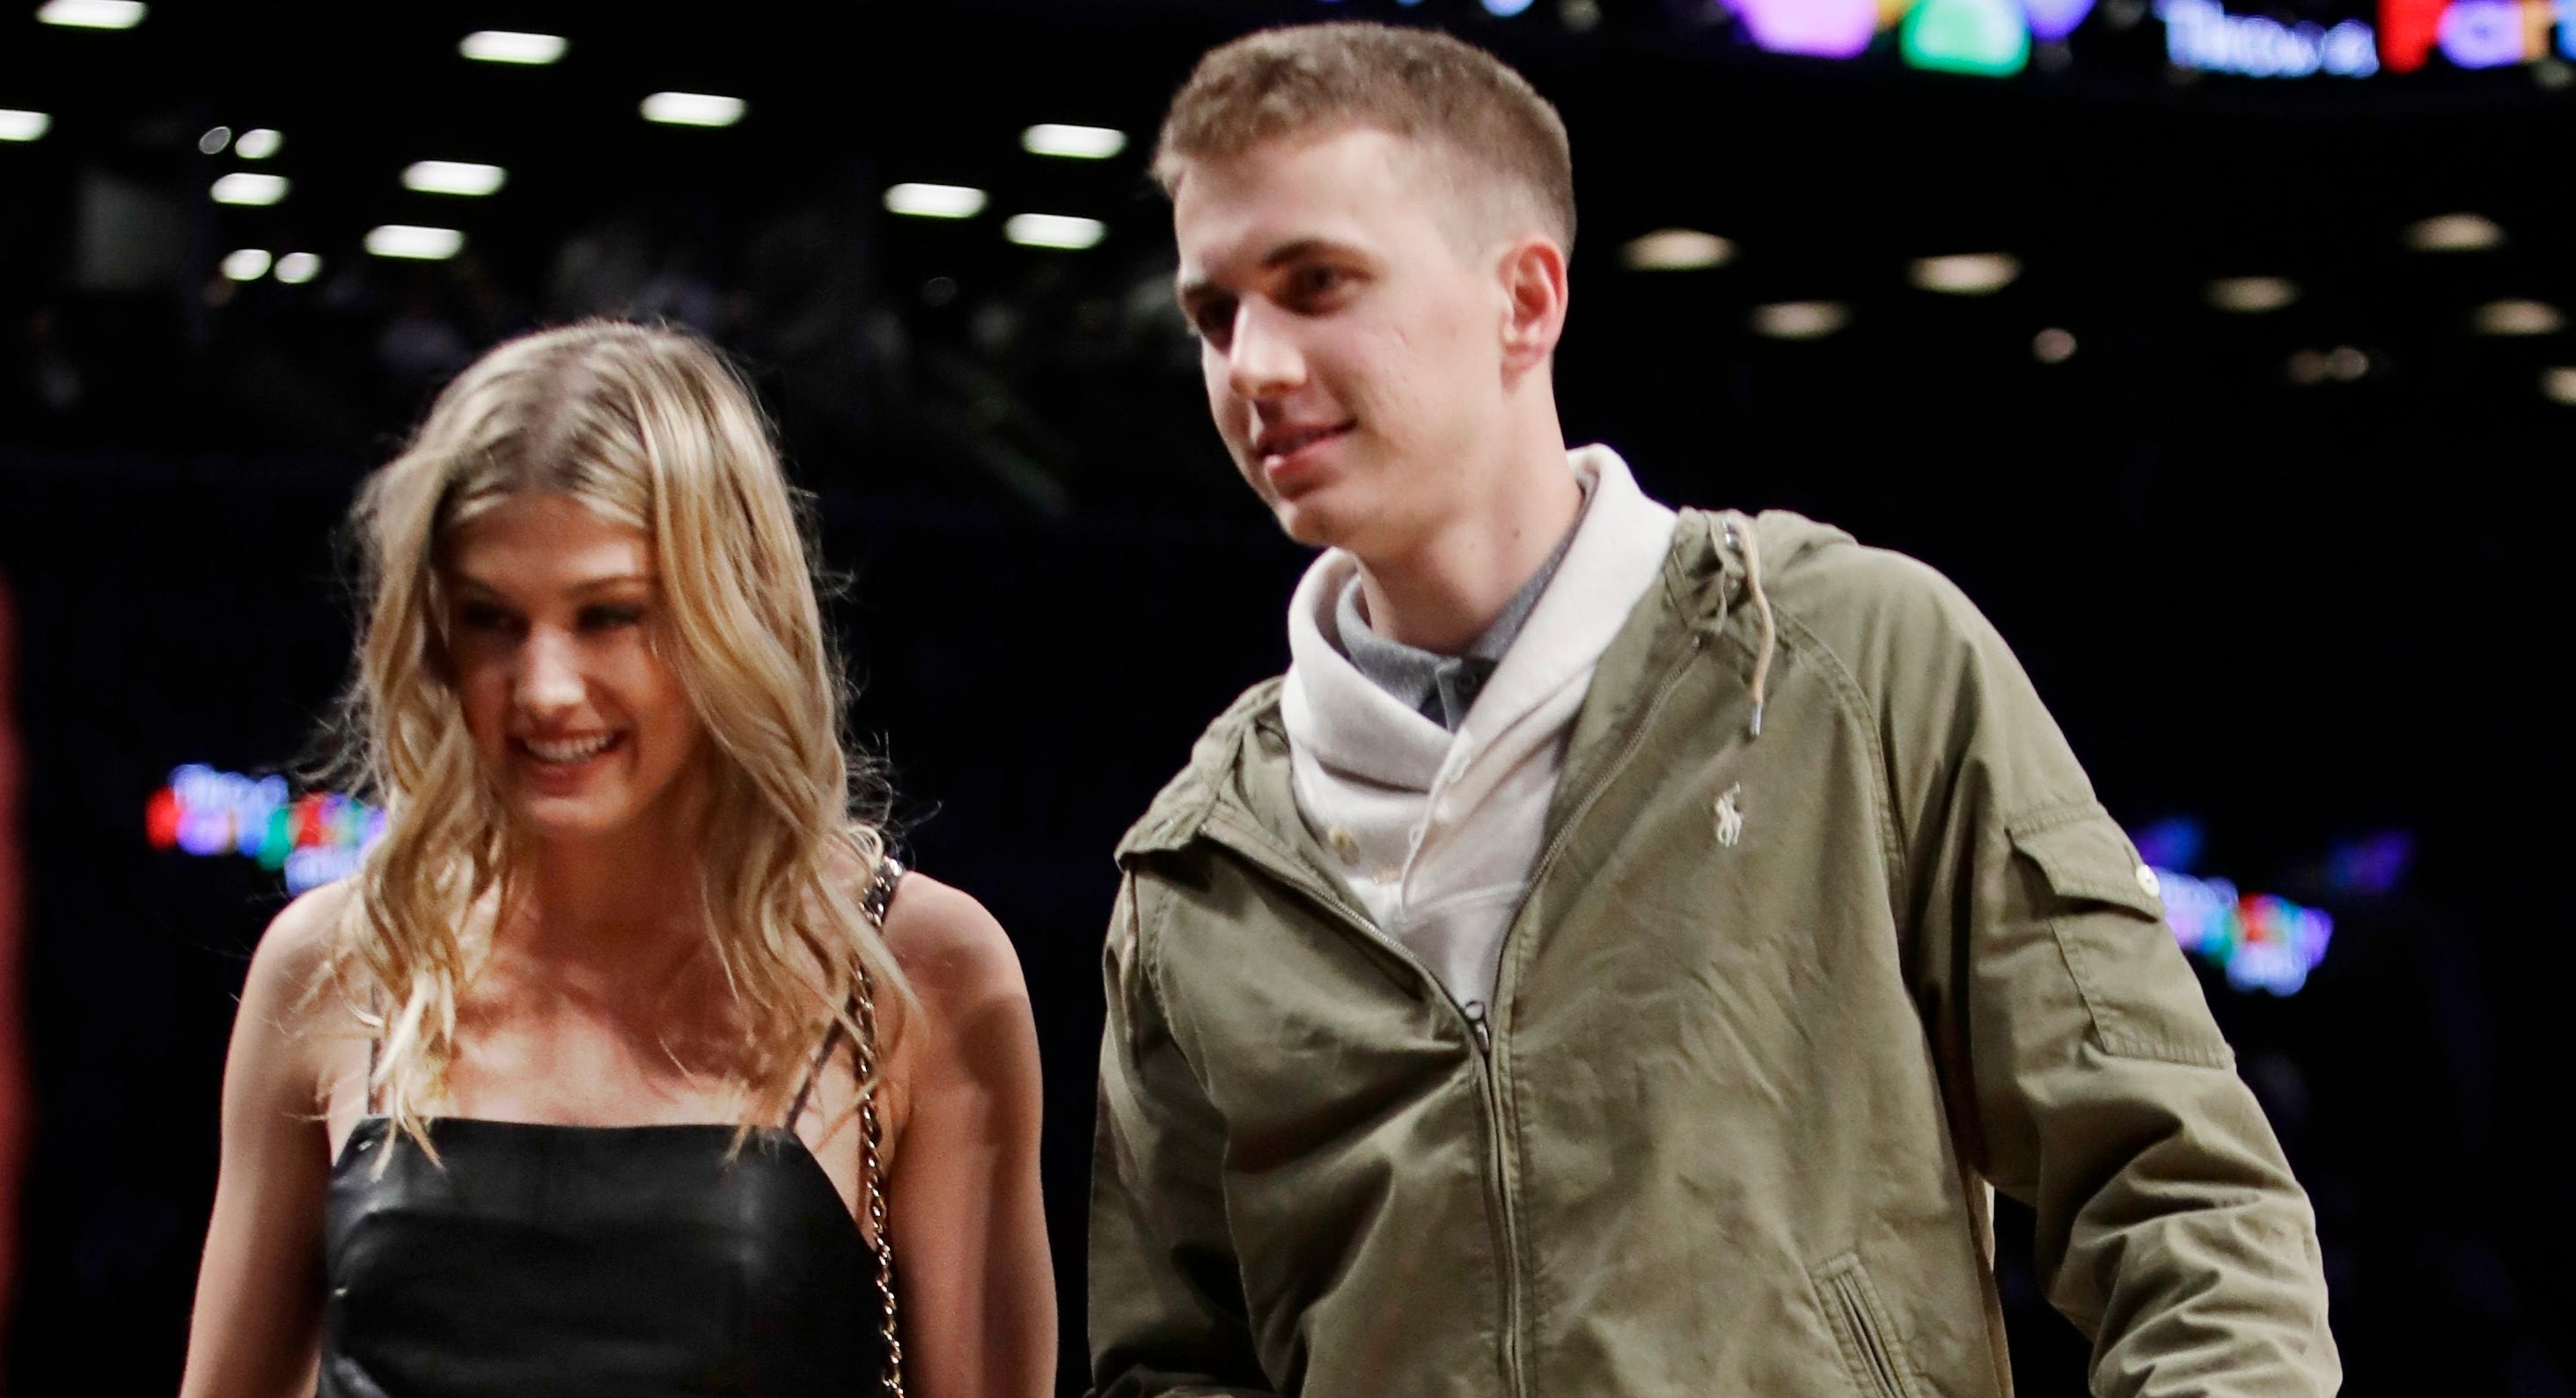 Genie Bouchard's bet may turn into Super Bowl date